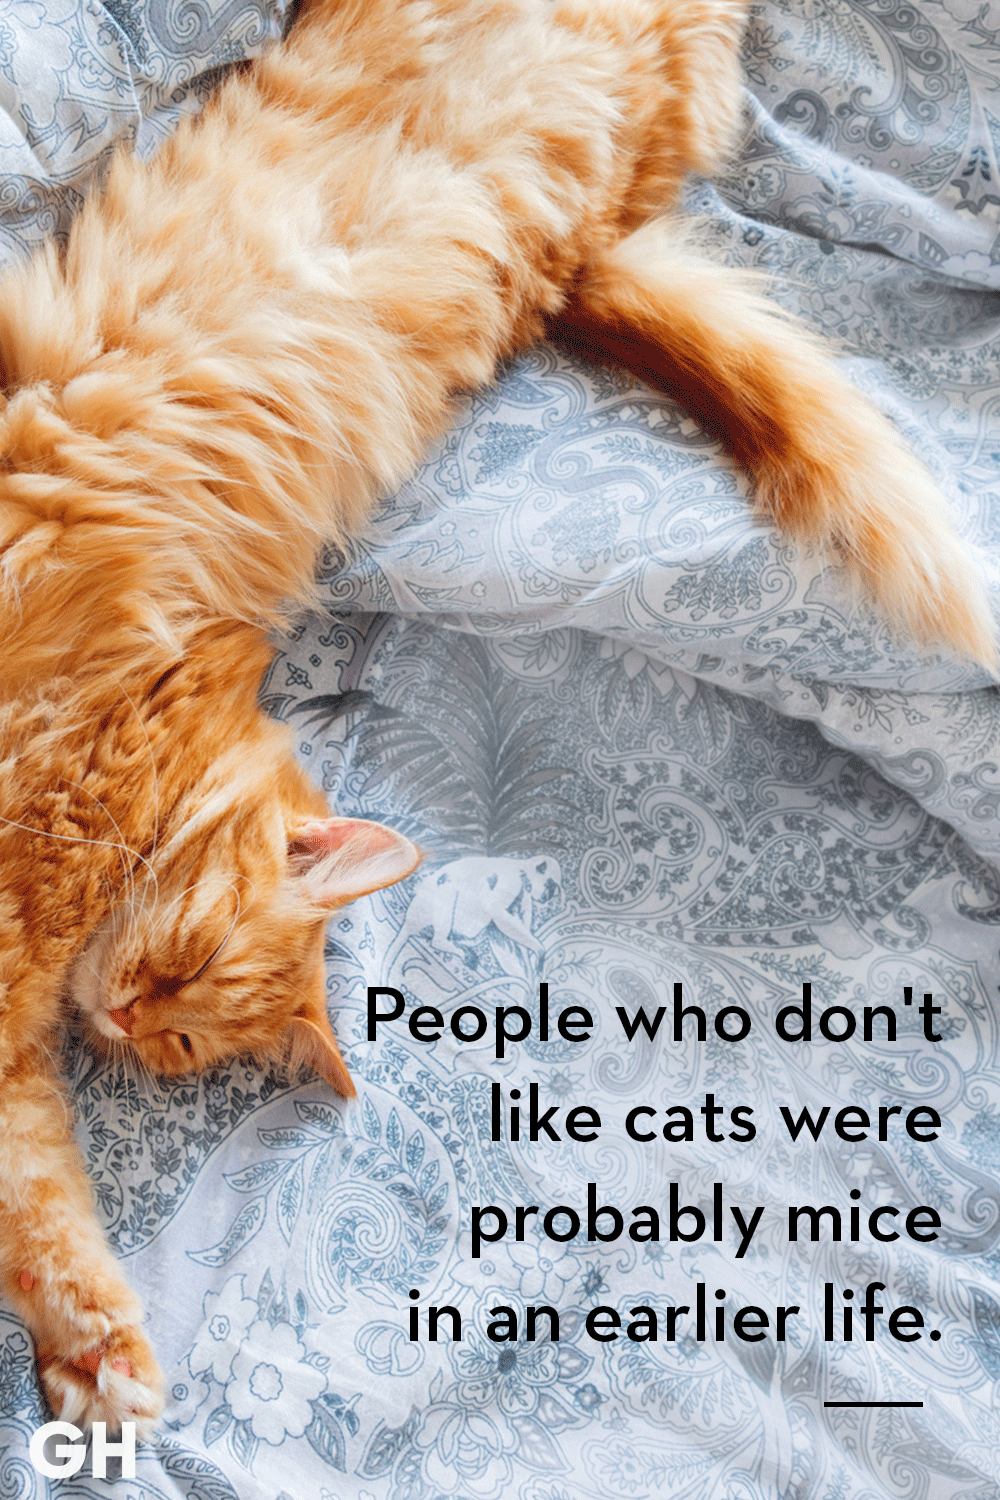 25 Quotes Only Cat Owners Will Understand Cat Quotes Kittens Funny Cat Quotes Funny